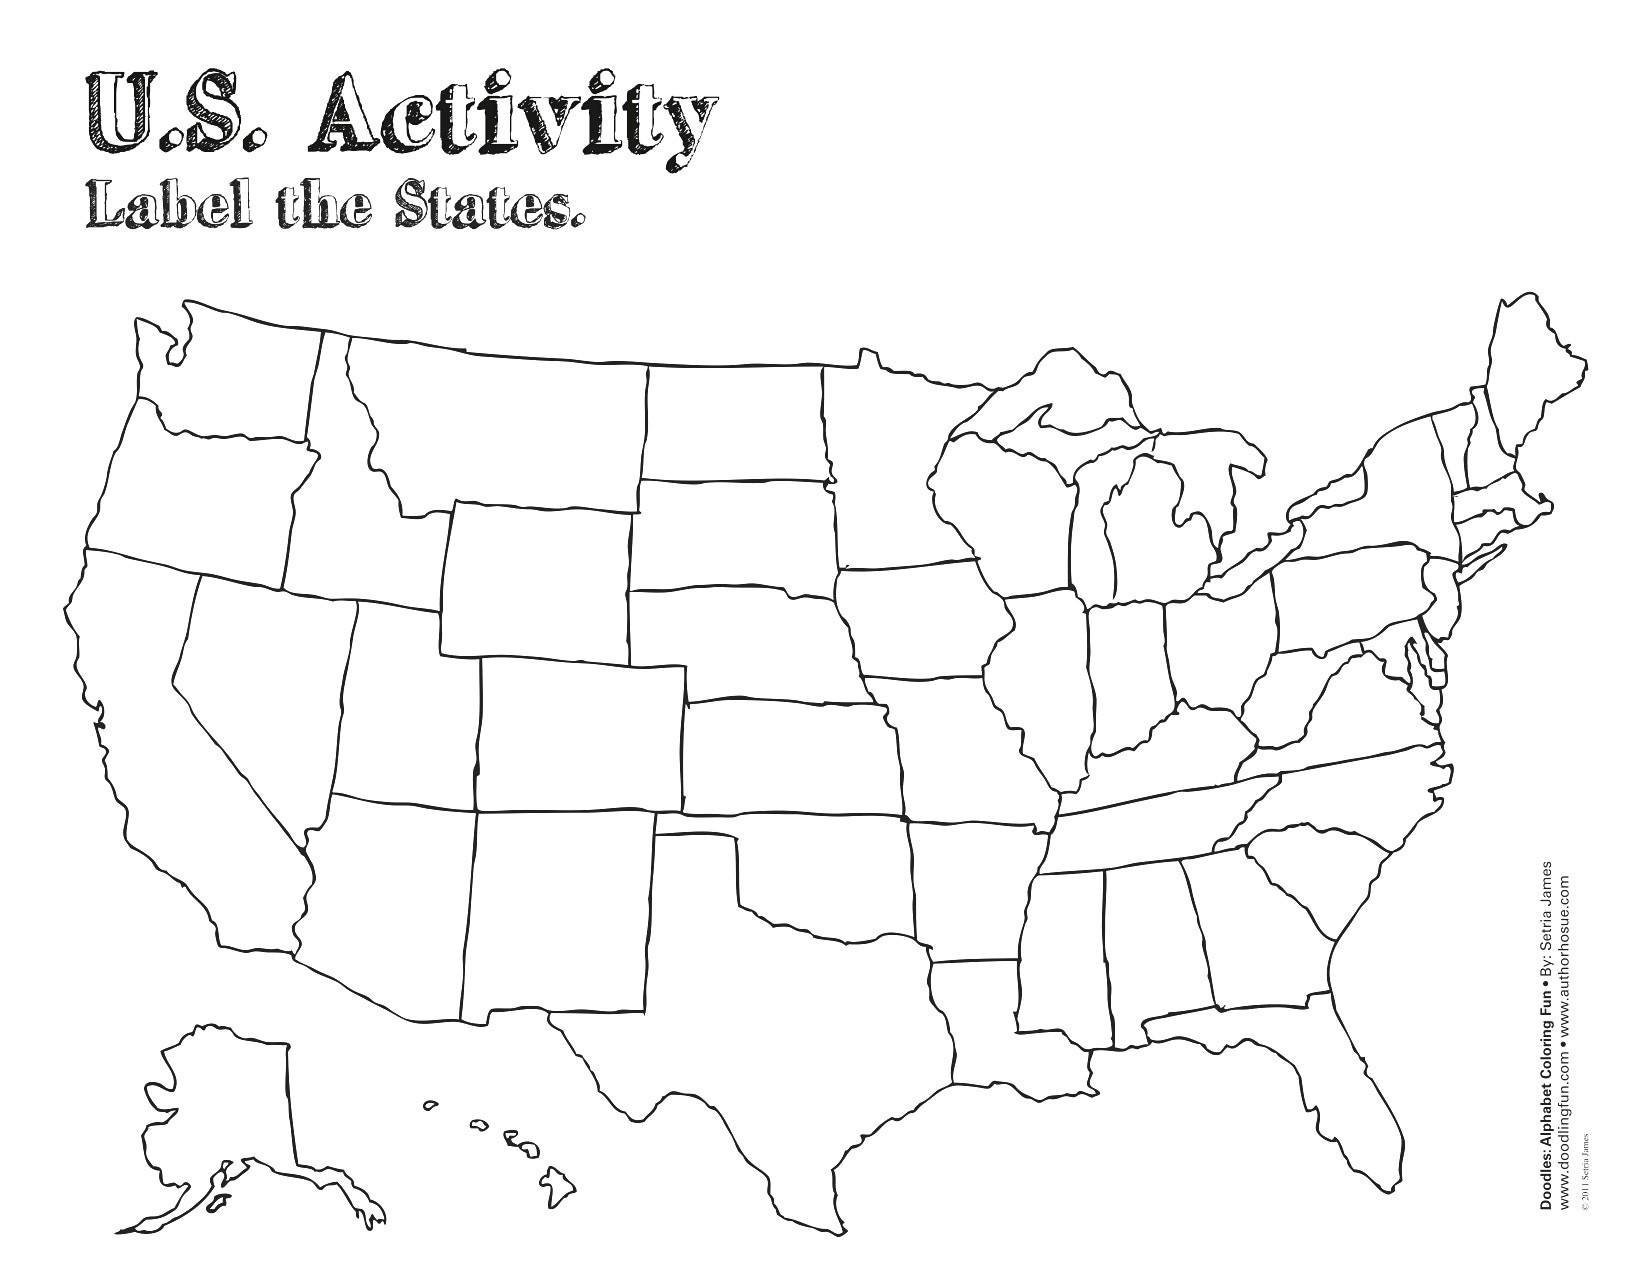 United States Map With State Names Pdf Refrence United States Map - Free Printable Blank Map Of The United States Of America